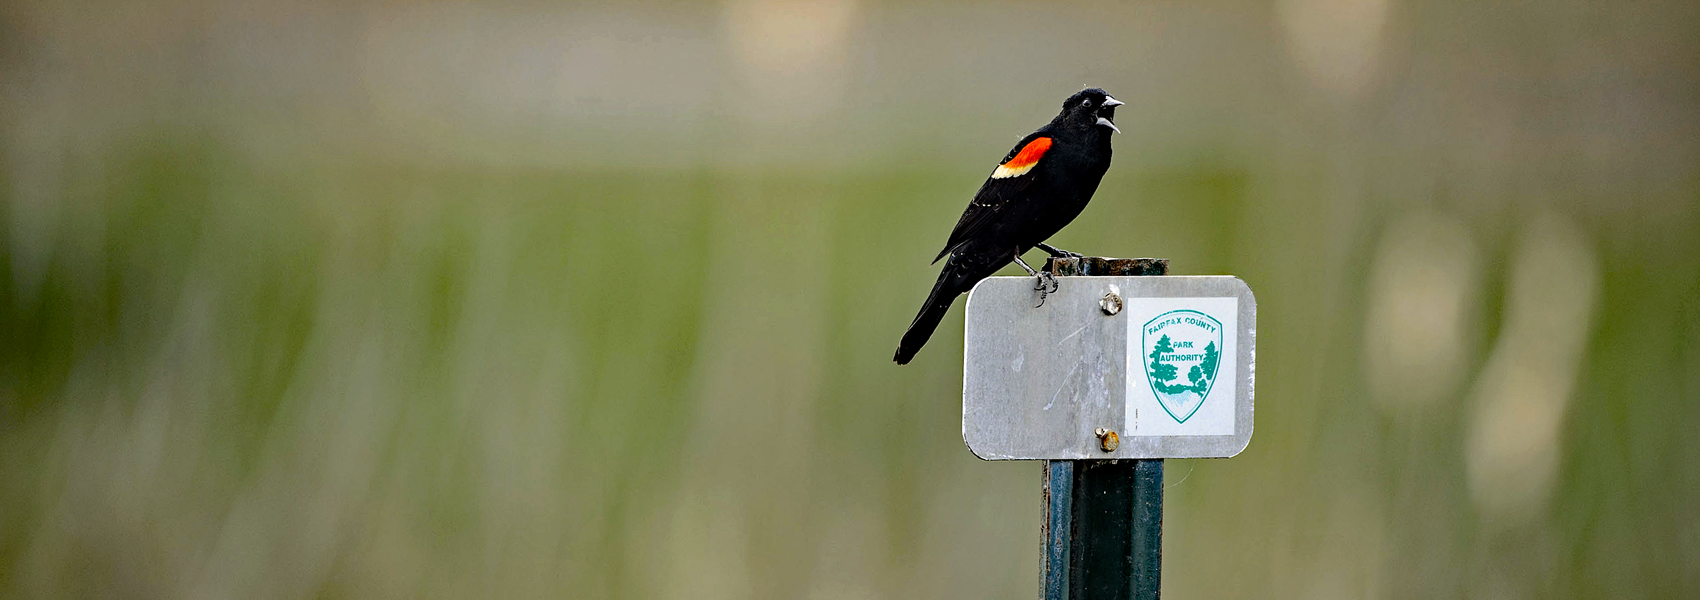 Redwing blackbird stands on a park sign in a field